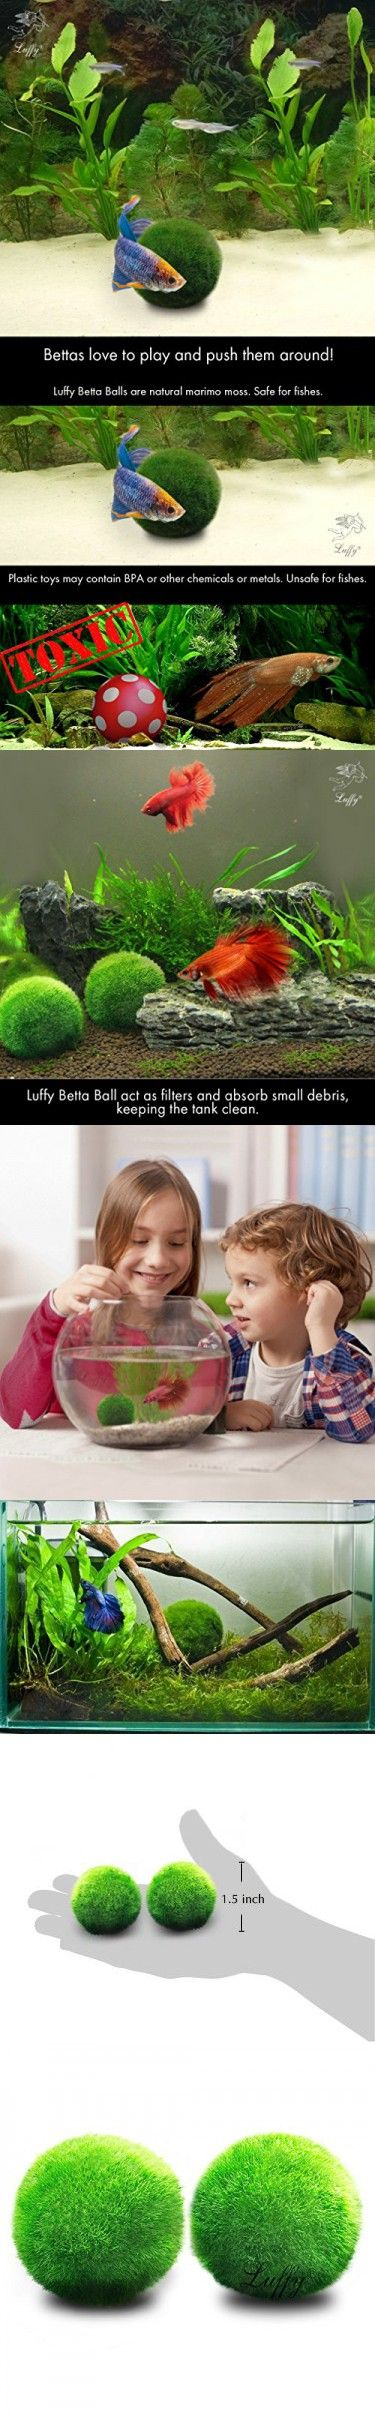 2 LUFFY Betta Ball : Live Round-Shaped Marimo Plant Toy for Betta Fish : Natural and Aquarium Safe